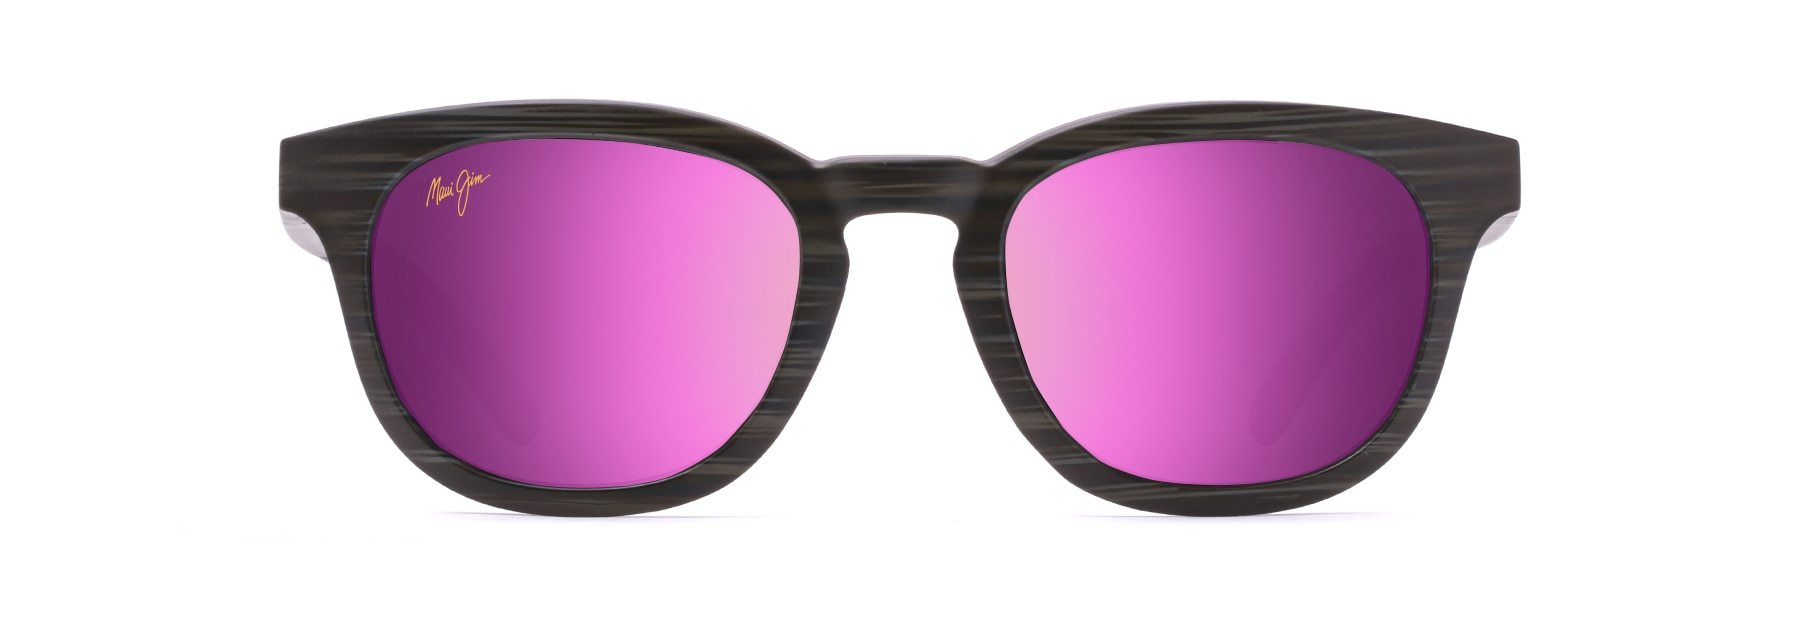 MyMaui Koko Head MM737-021 Sunglasses